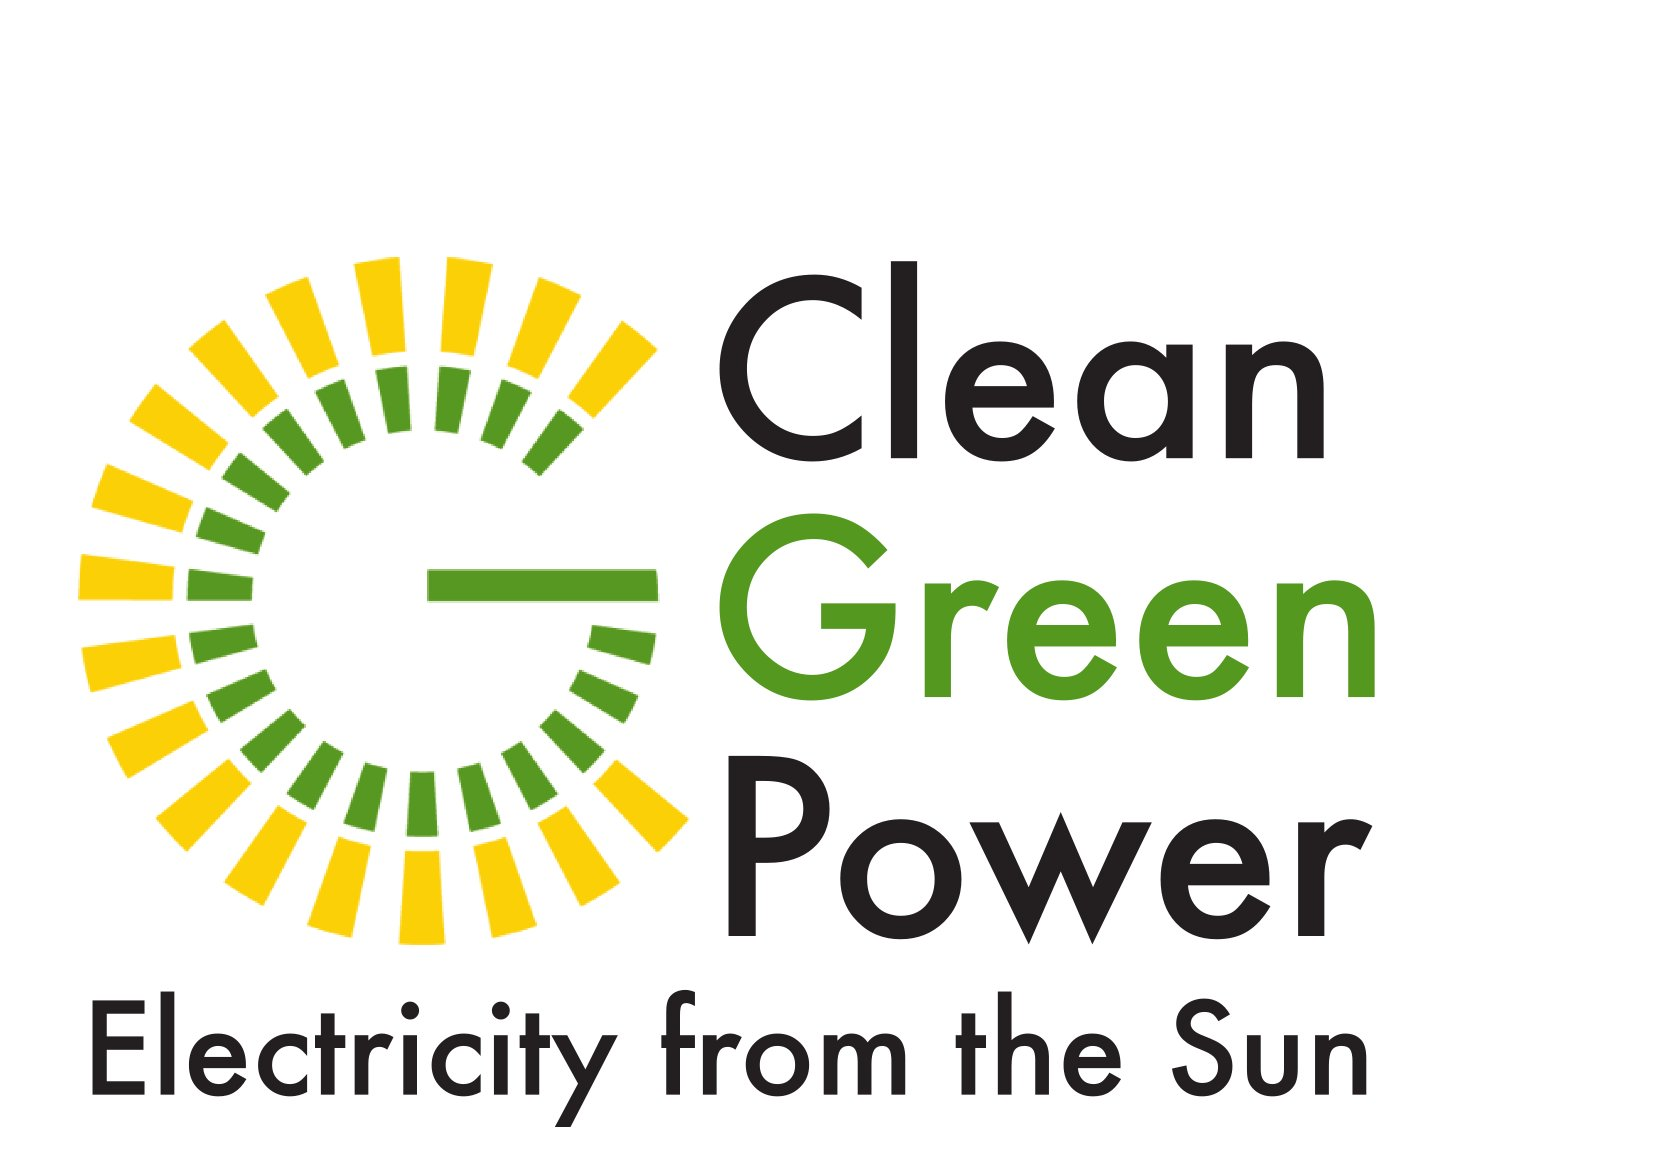 green power from clean power essay Green power is the solution to creating a cleaner, sustainable energy system renewable energy--power from the sun, wind, plants, and moving water--is a natural way to meet our energy needs and protect the environment.